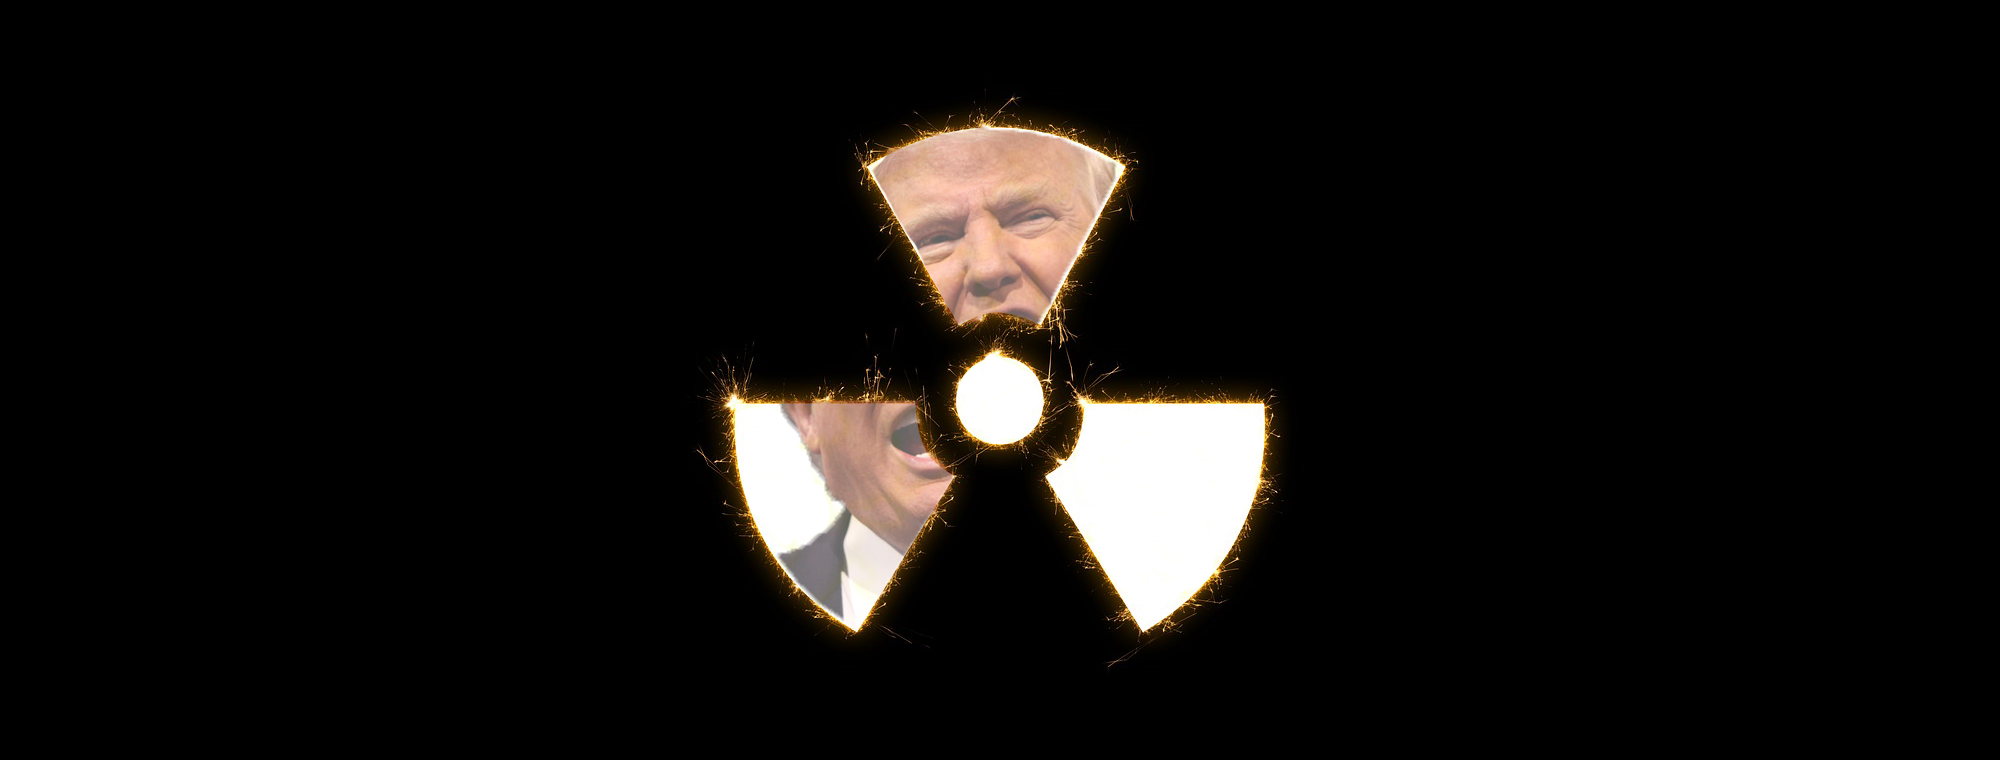 President Trump and radioactive hazard composite image